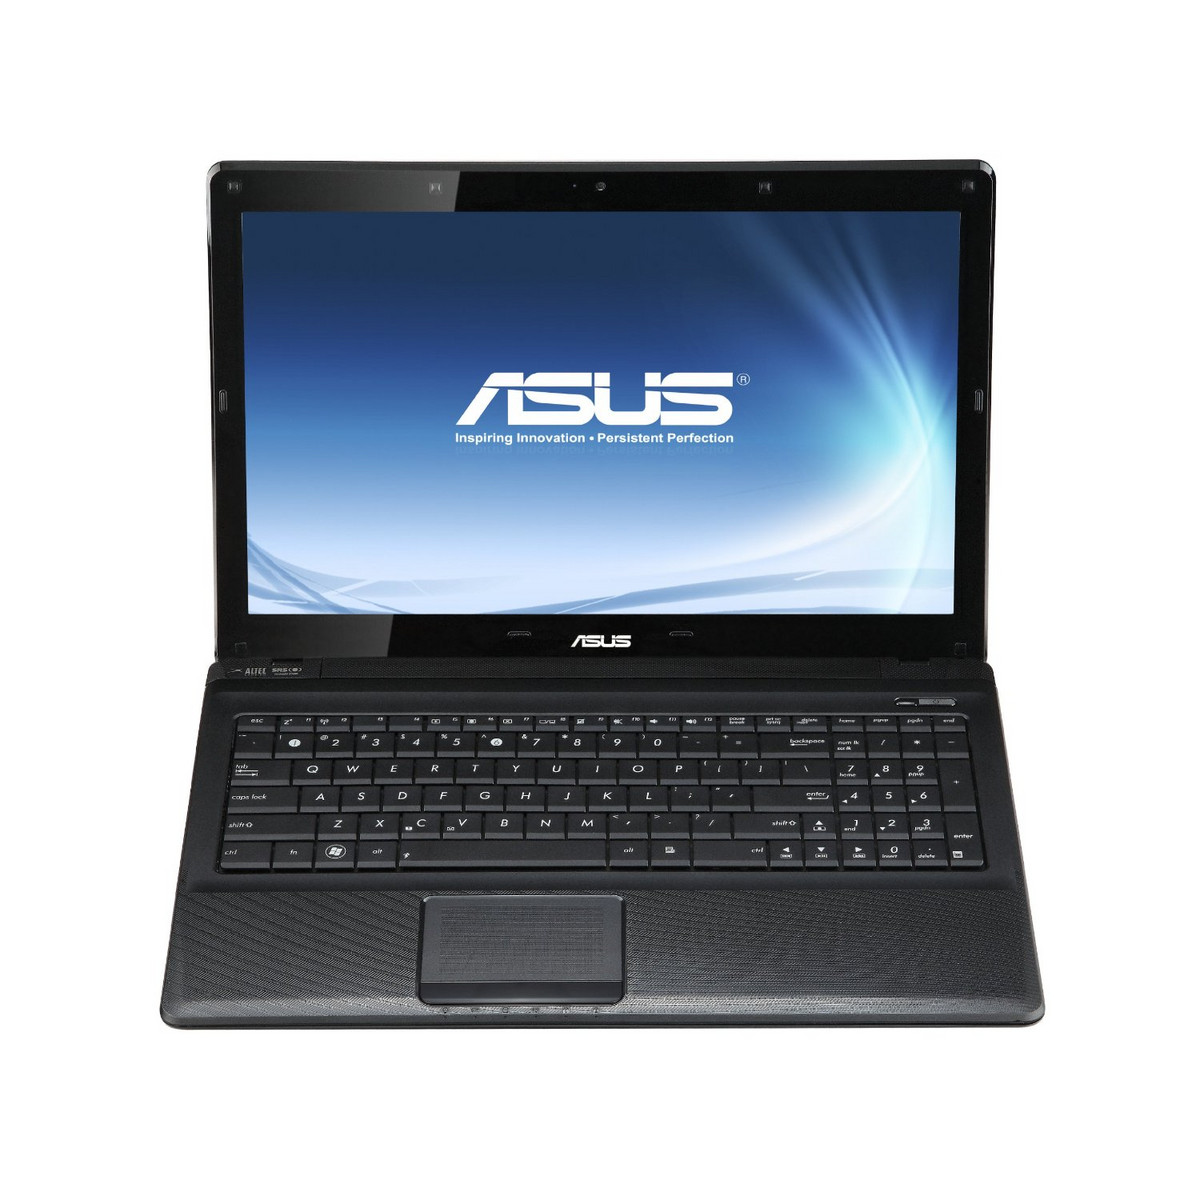 ASUS A52JK NOTEBOOK INTEL TURBO BOOST DRIVER FOR WINDOWS 10